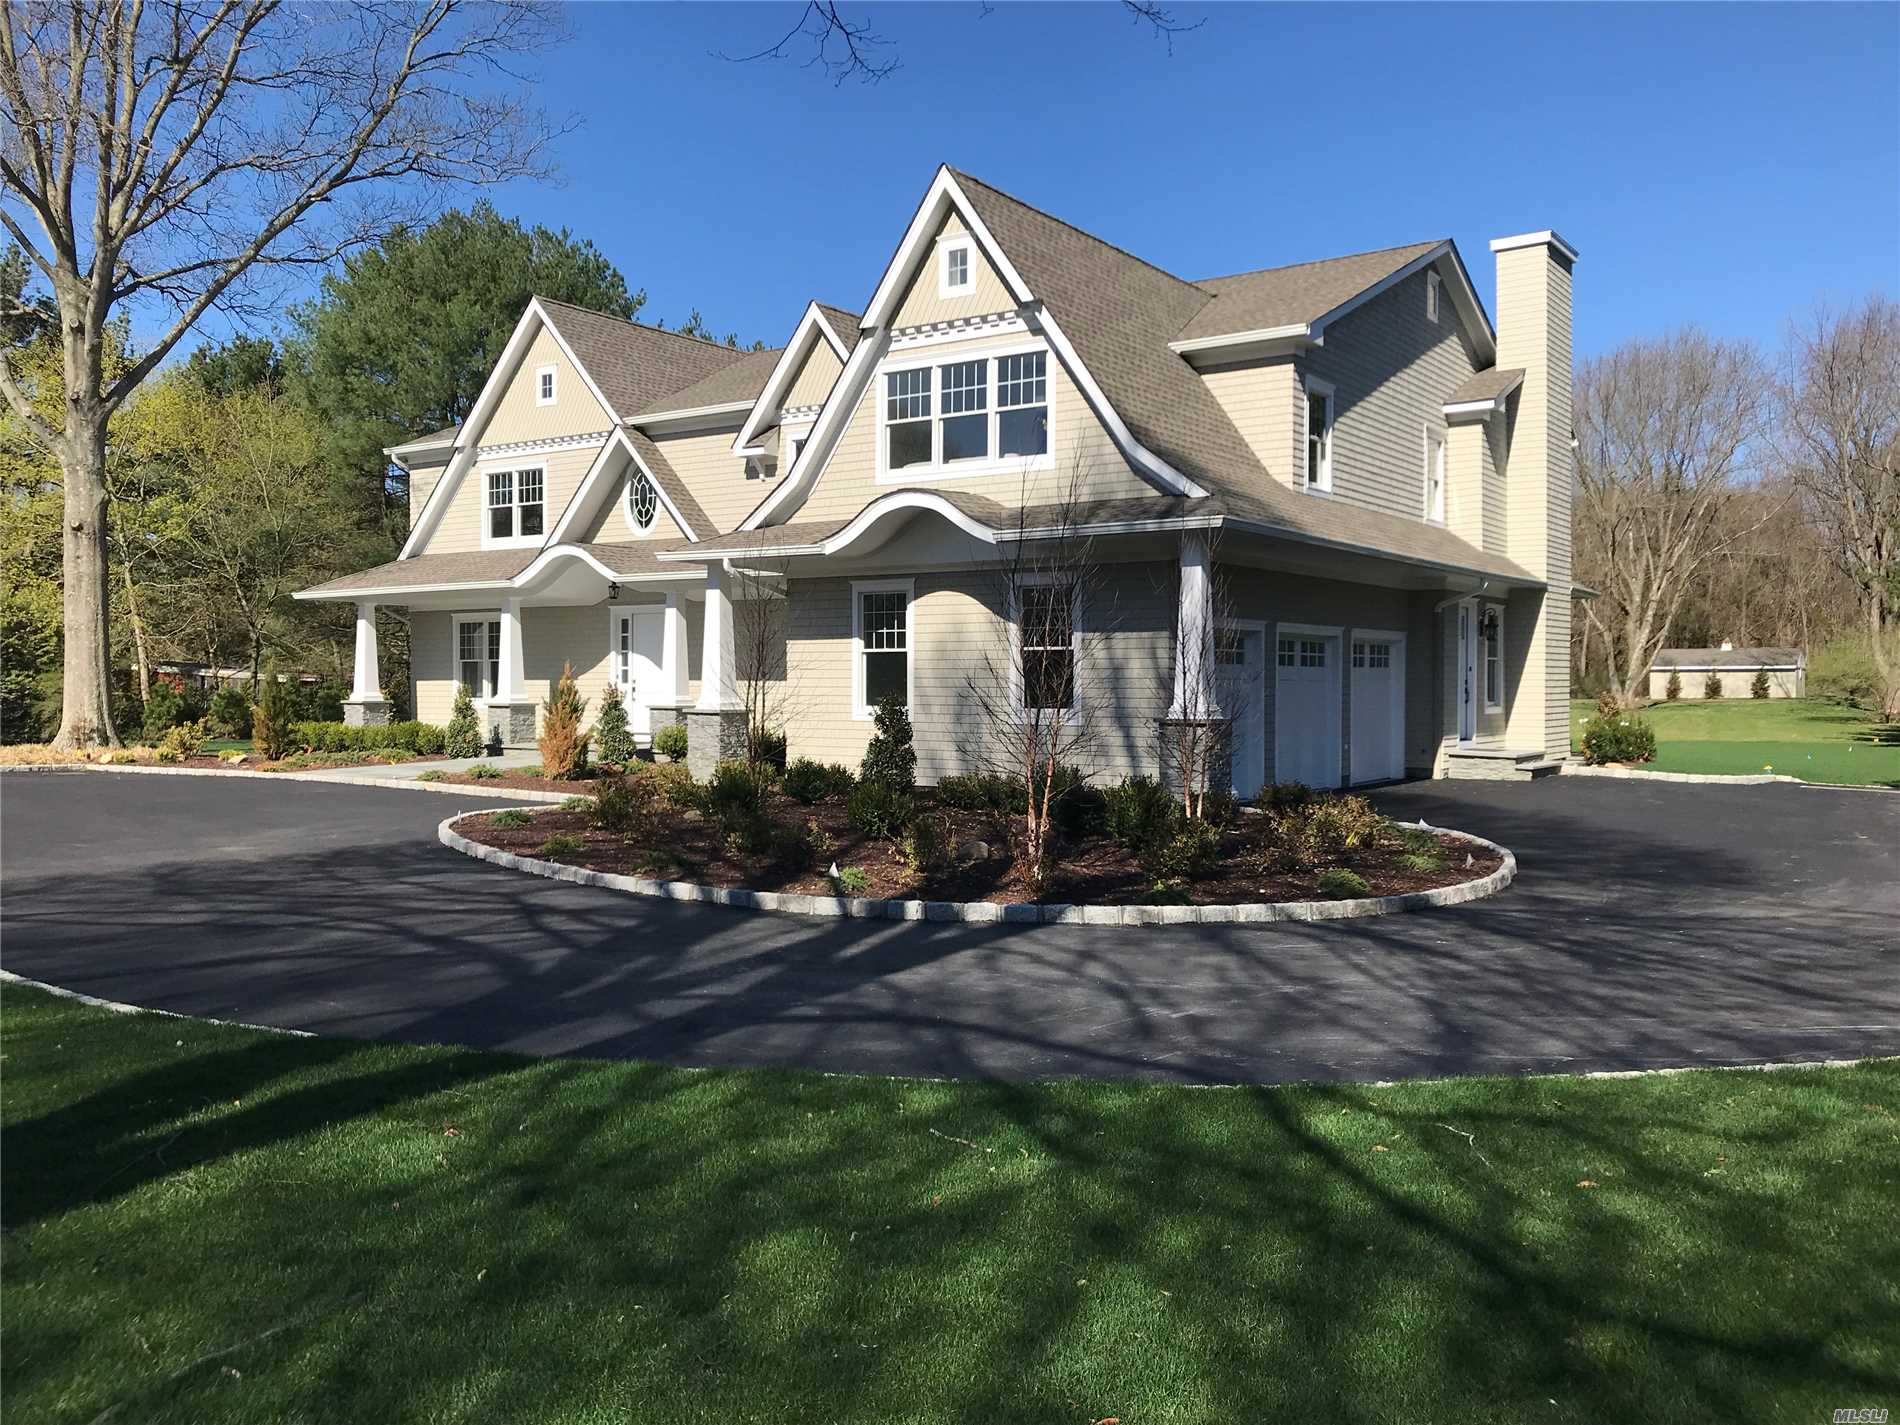 459 Cold Spring Rd Laurel Hollow, NY 11791